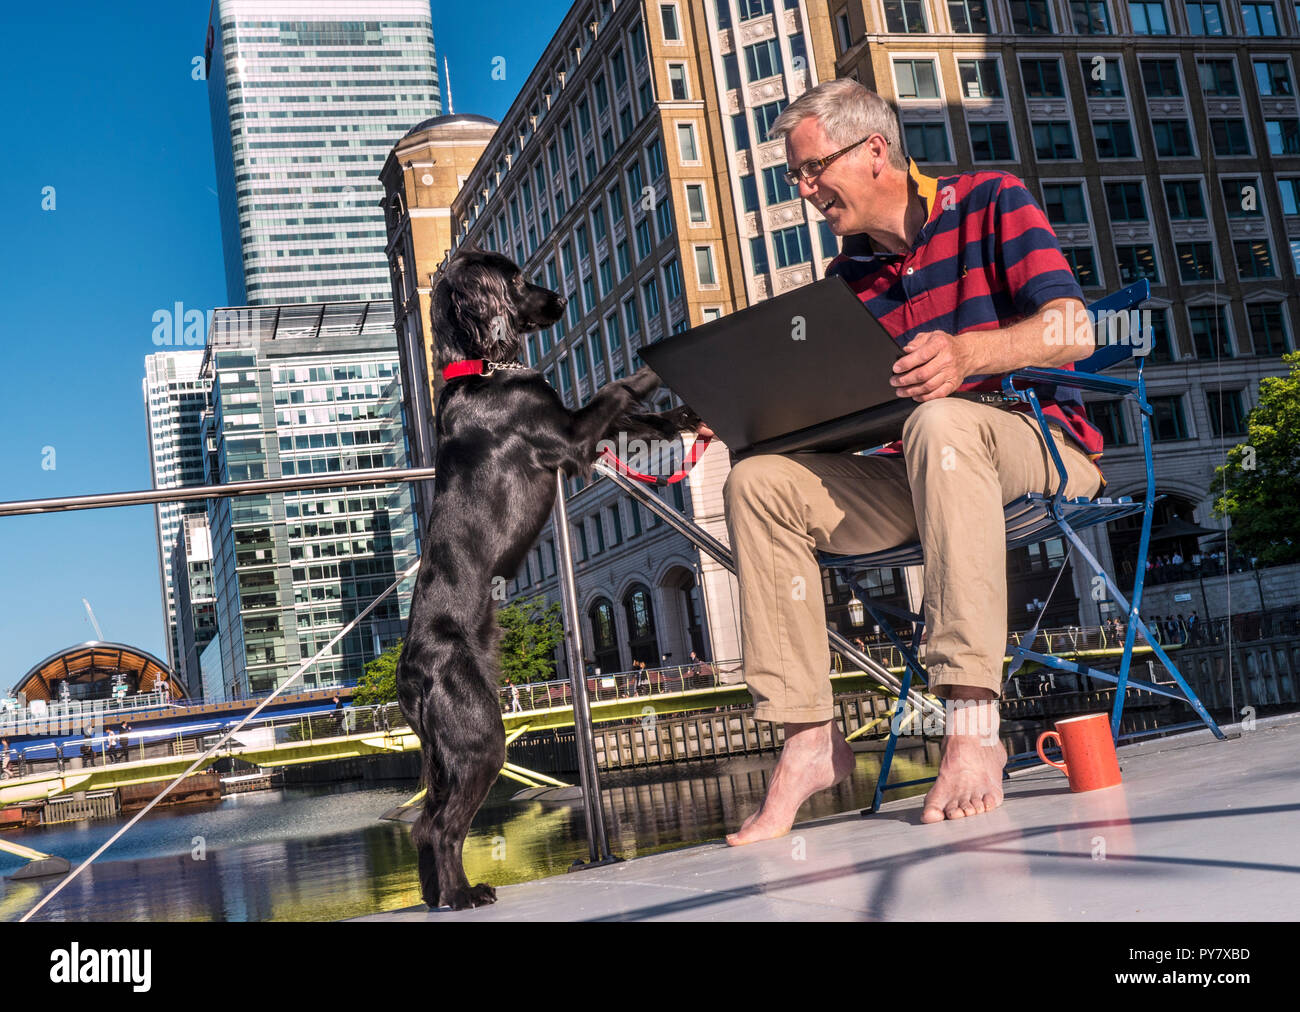 Self-employed businessman on deck of his river barge home office enjoying the sun & his dog, a contrast with big city buildings Canary Wharf London - Stock Image